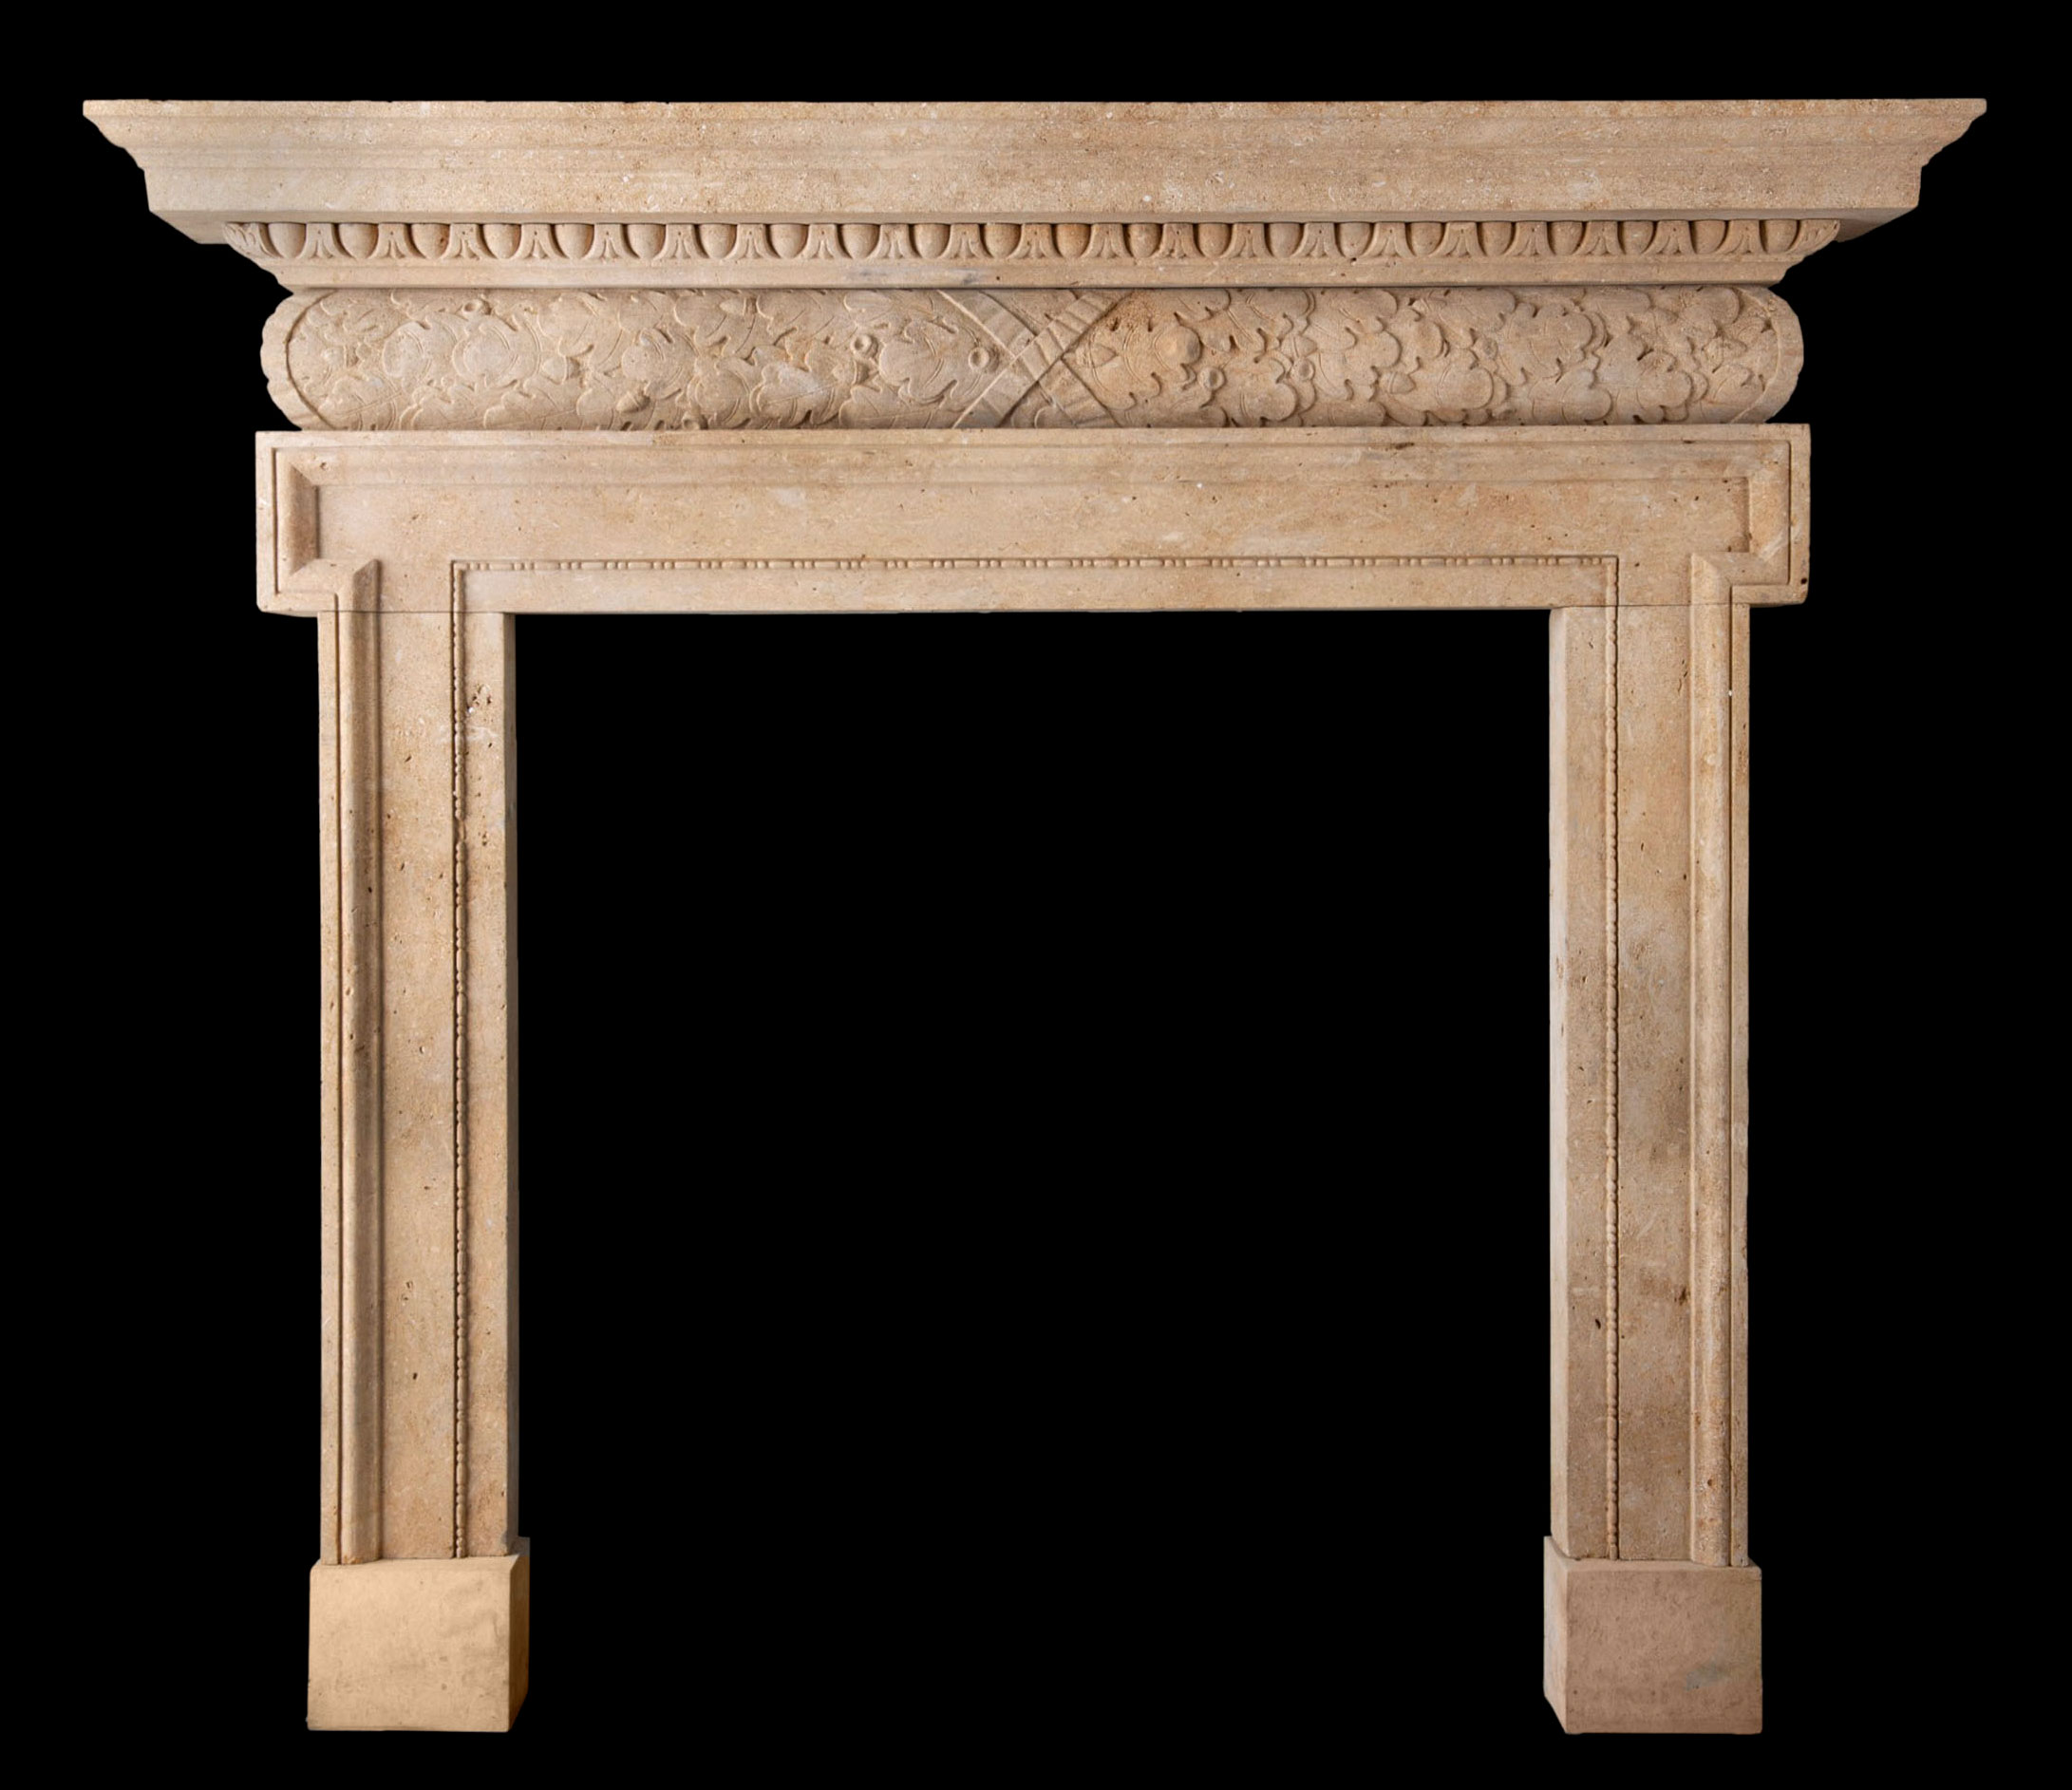 Bruce – Carved Stone Fire Surround